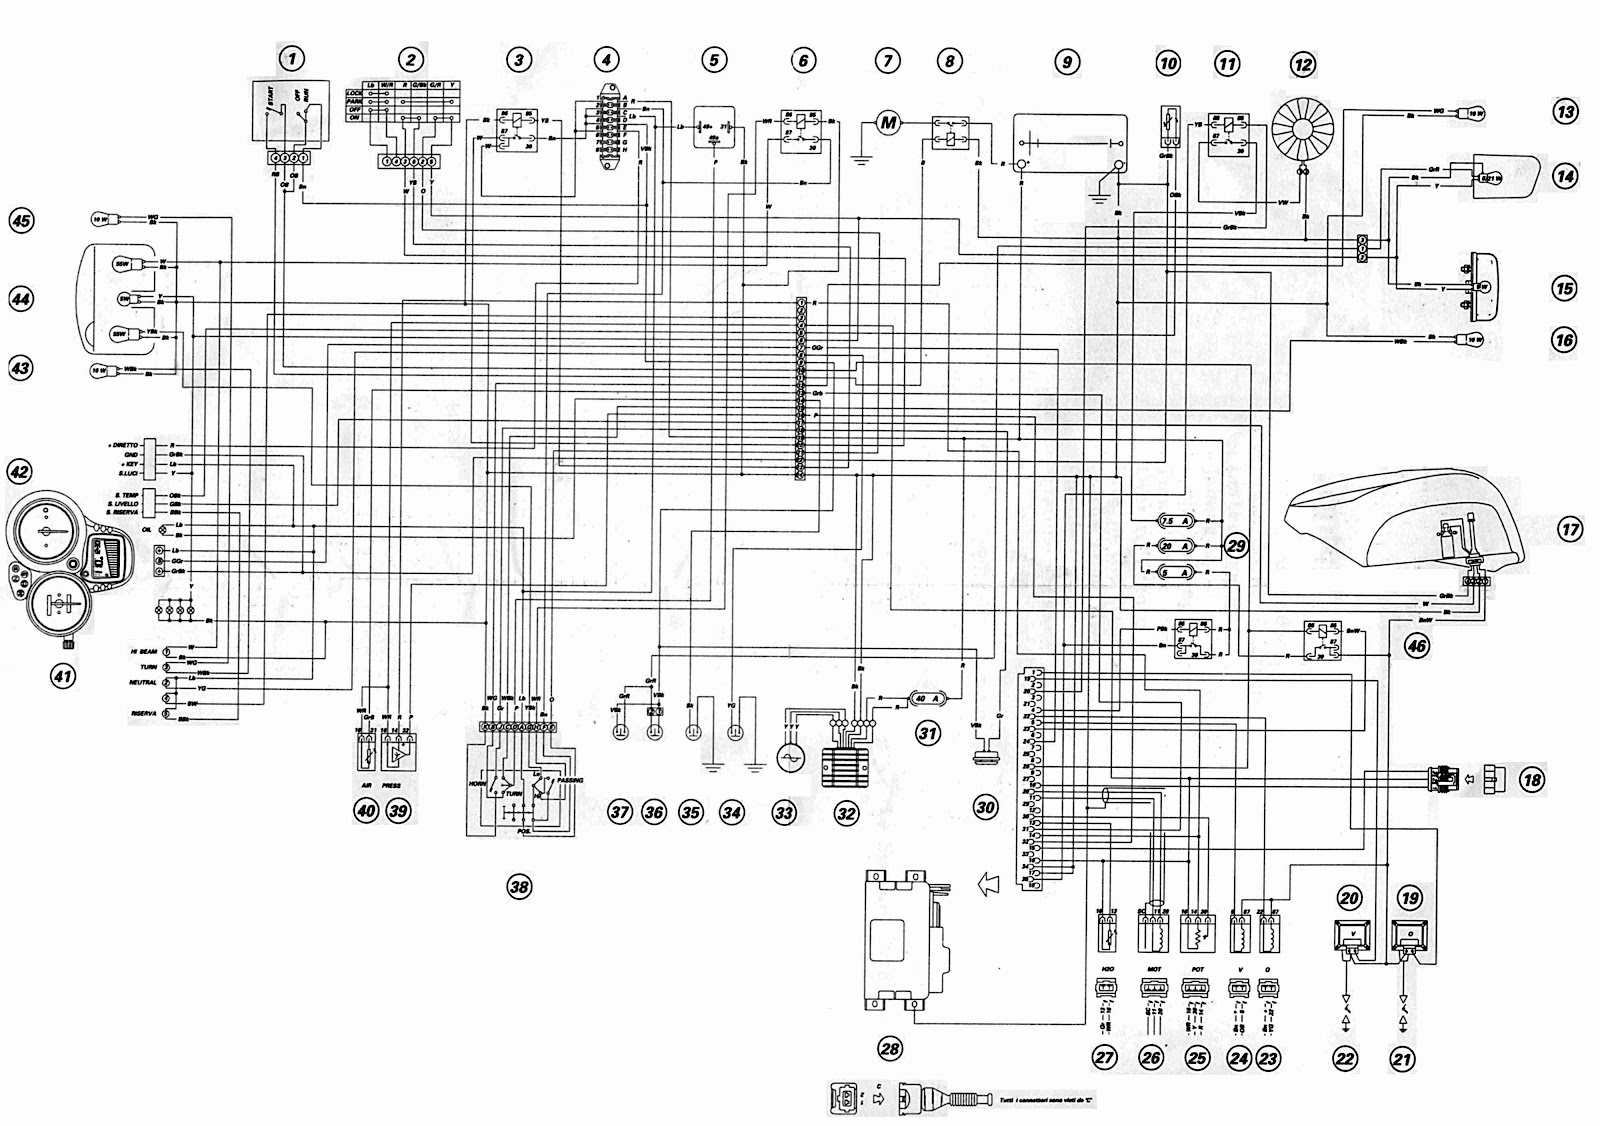 Ducati 160 Wiring Diagram Bookmark About Franklin Electric Control Box 2823008110 Data Rh 7 13 Mercedes Aktion Tesmer De 999